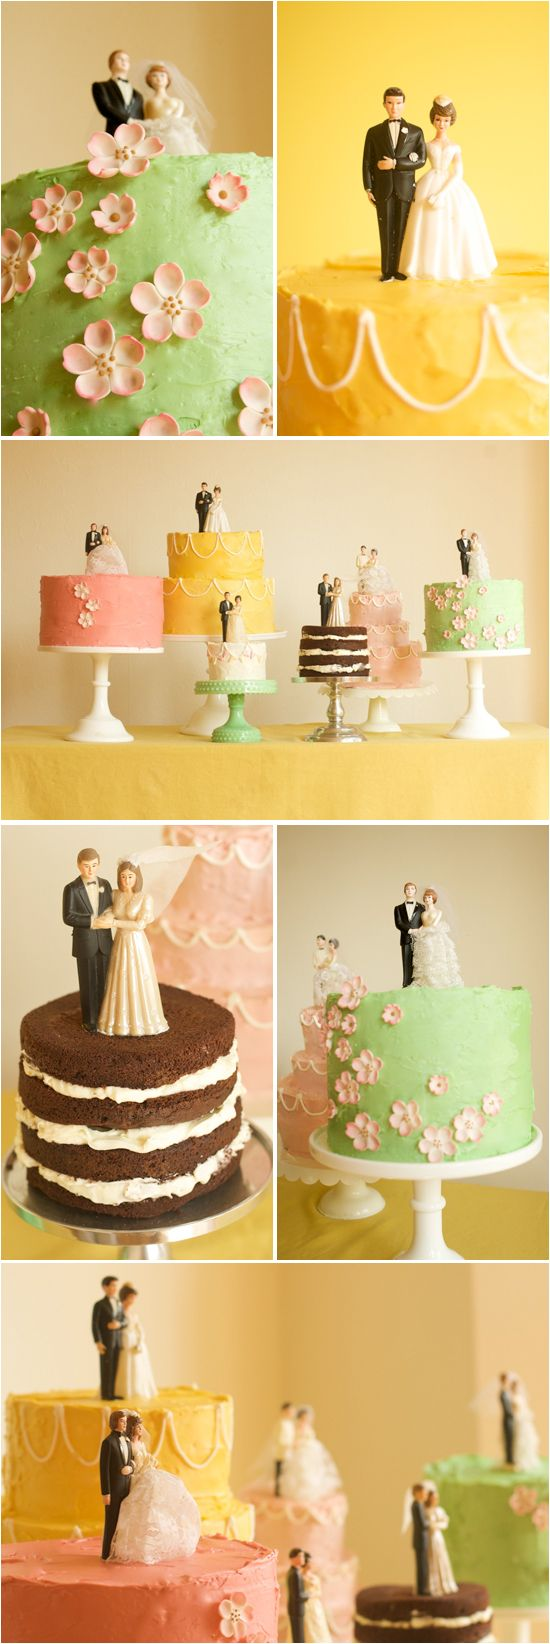 A Vintage Cake Topper Spread - Project Wedding